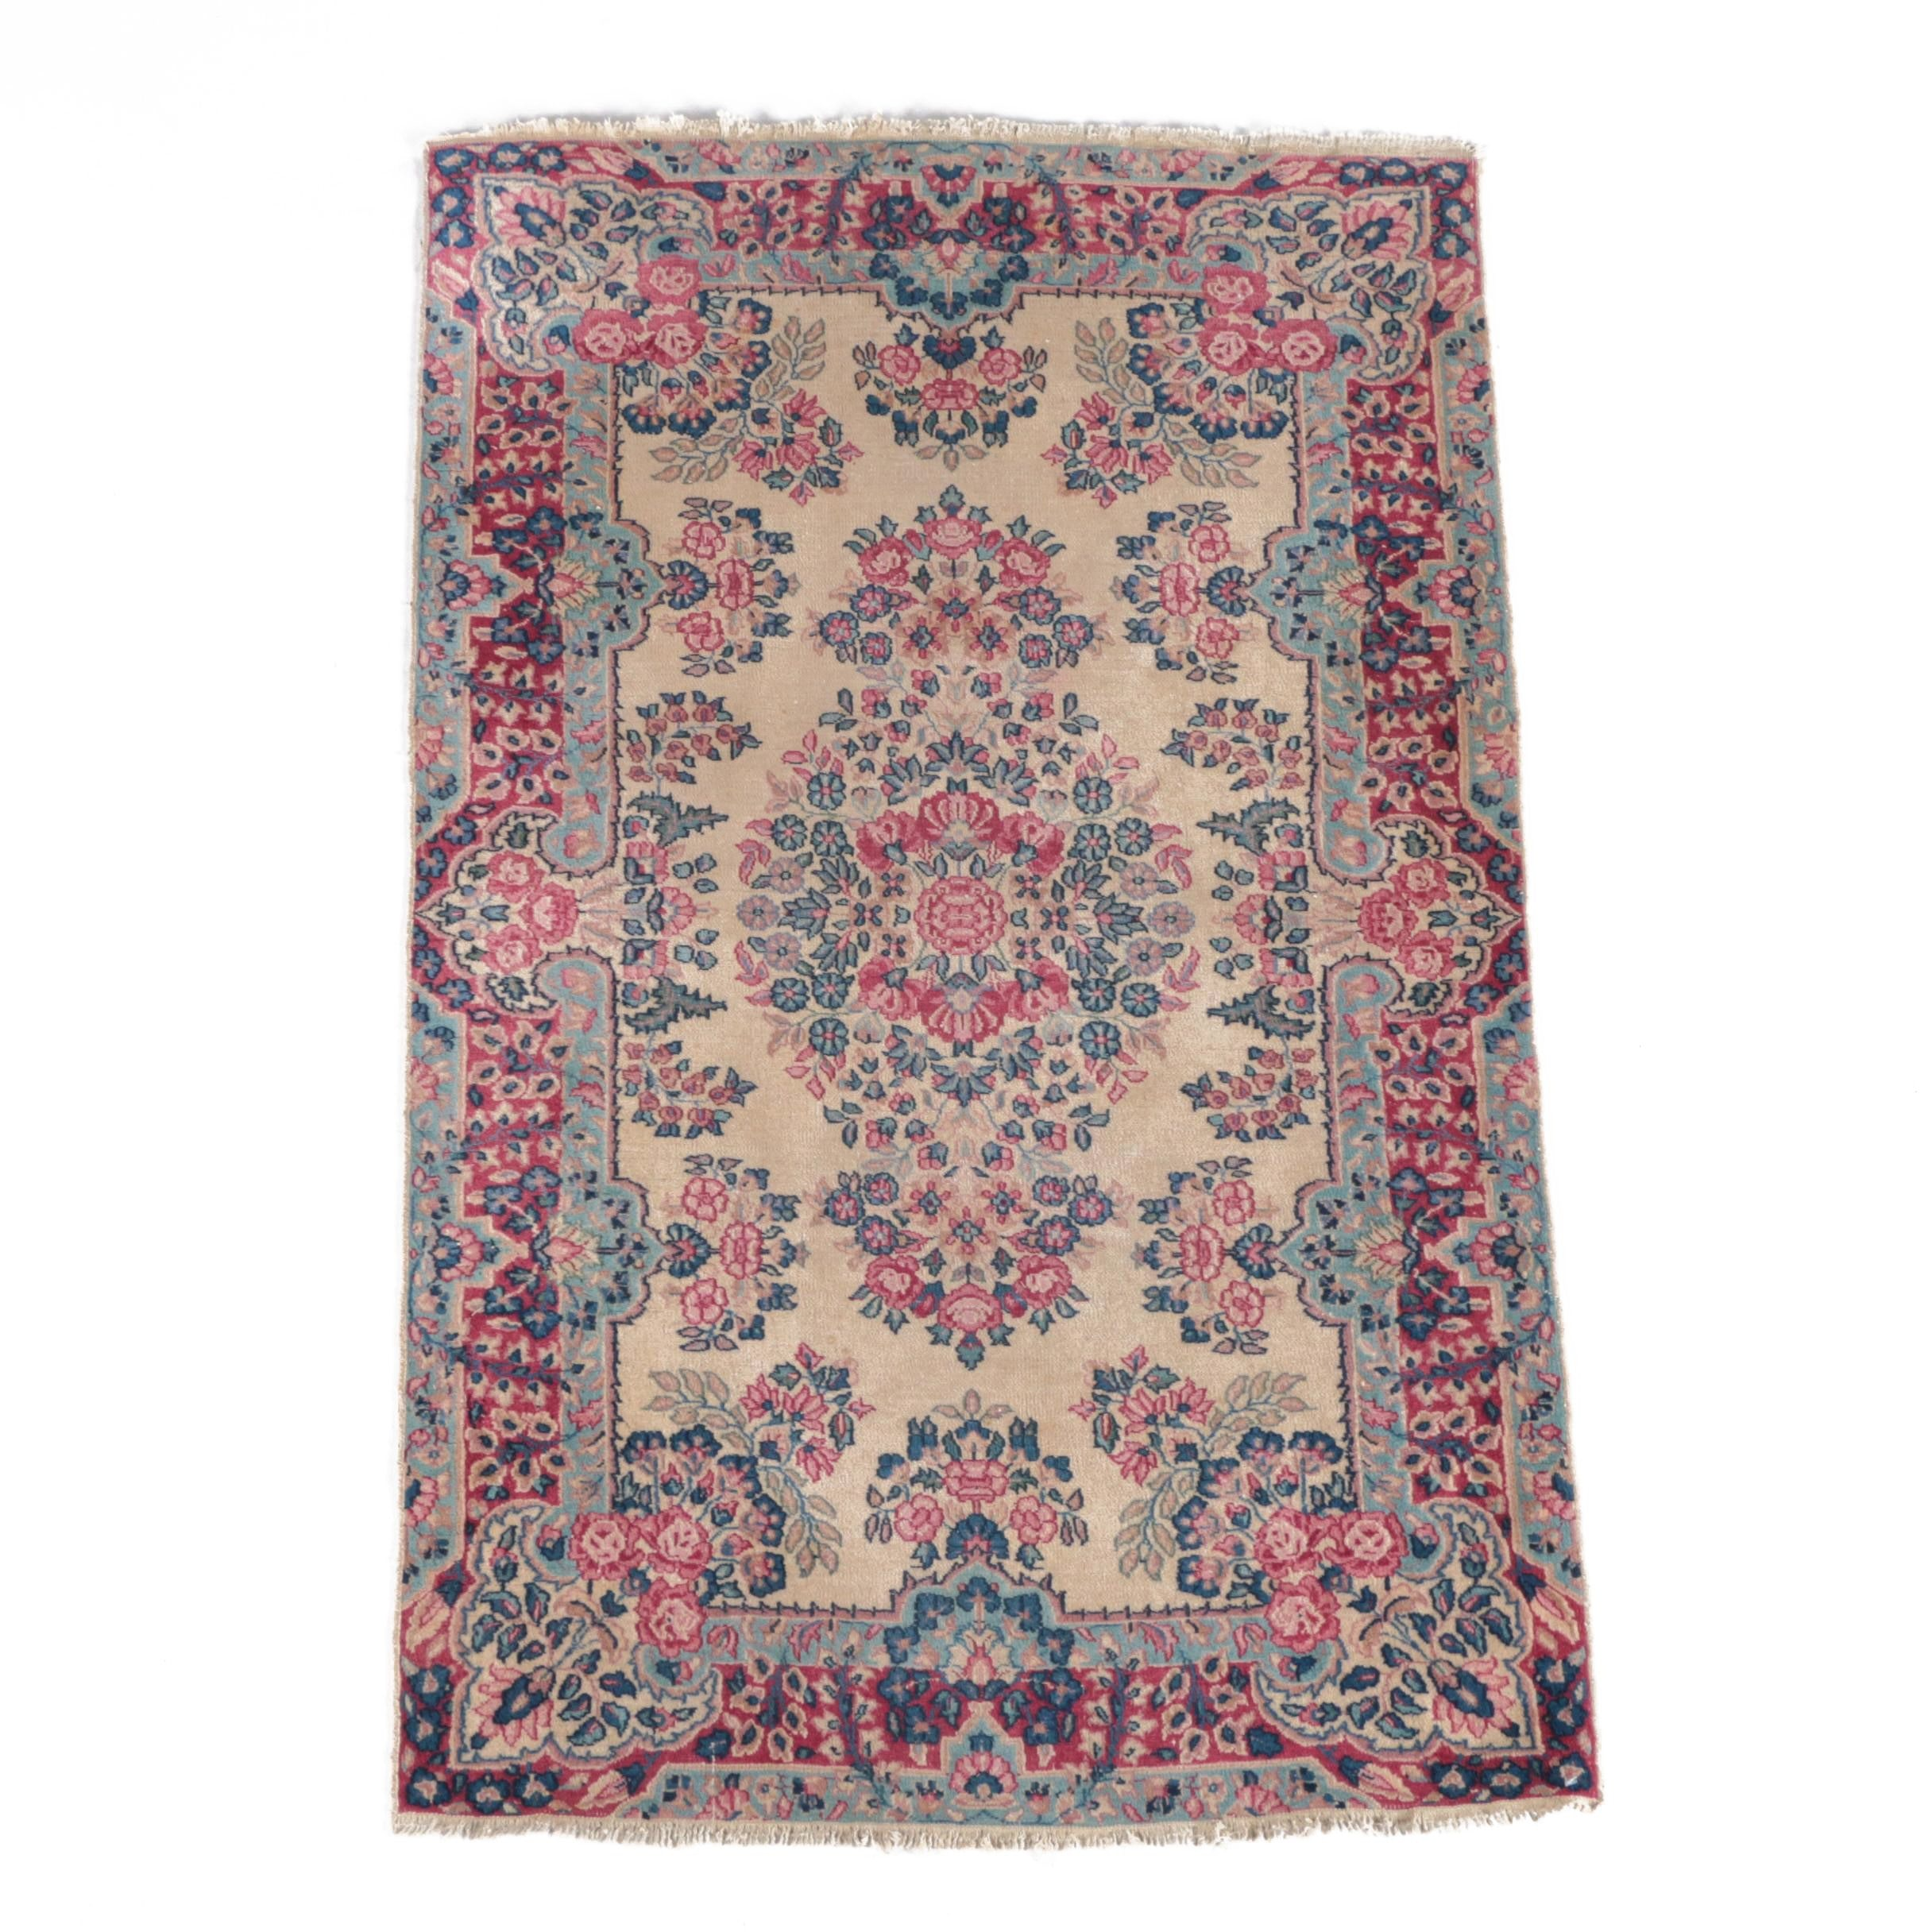 Vintage Hand-Knotted Persian Kerman Area Rug